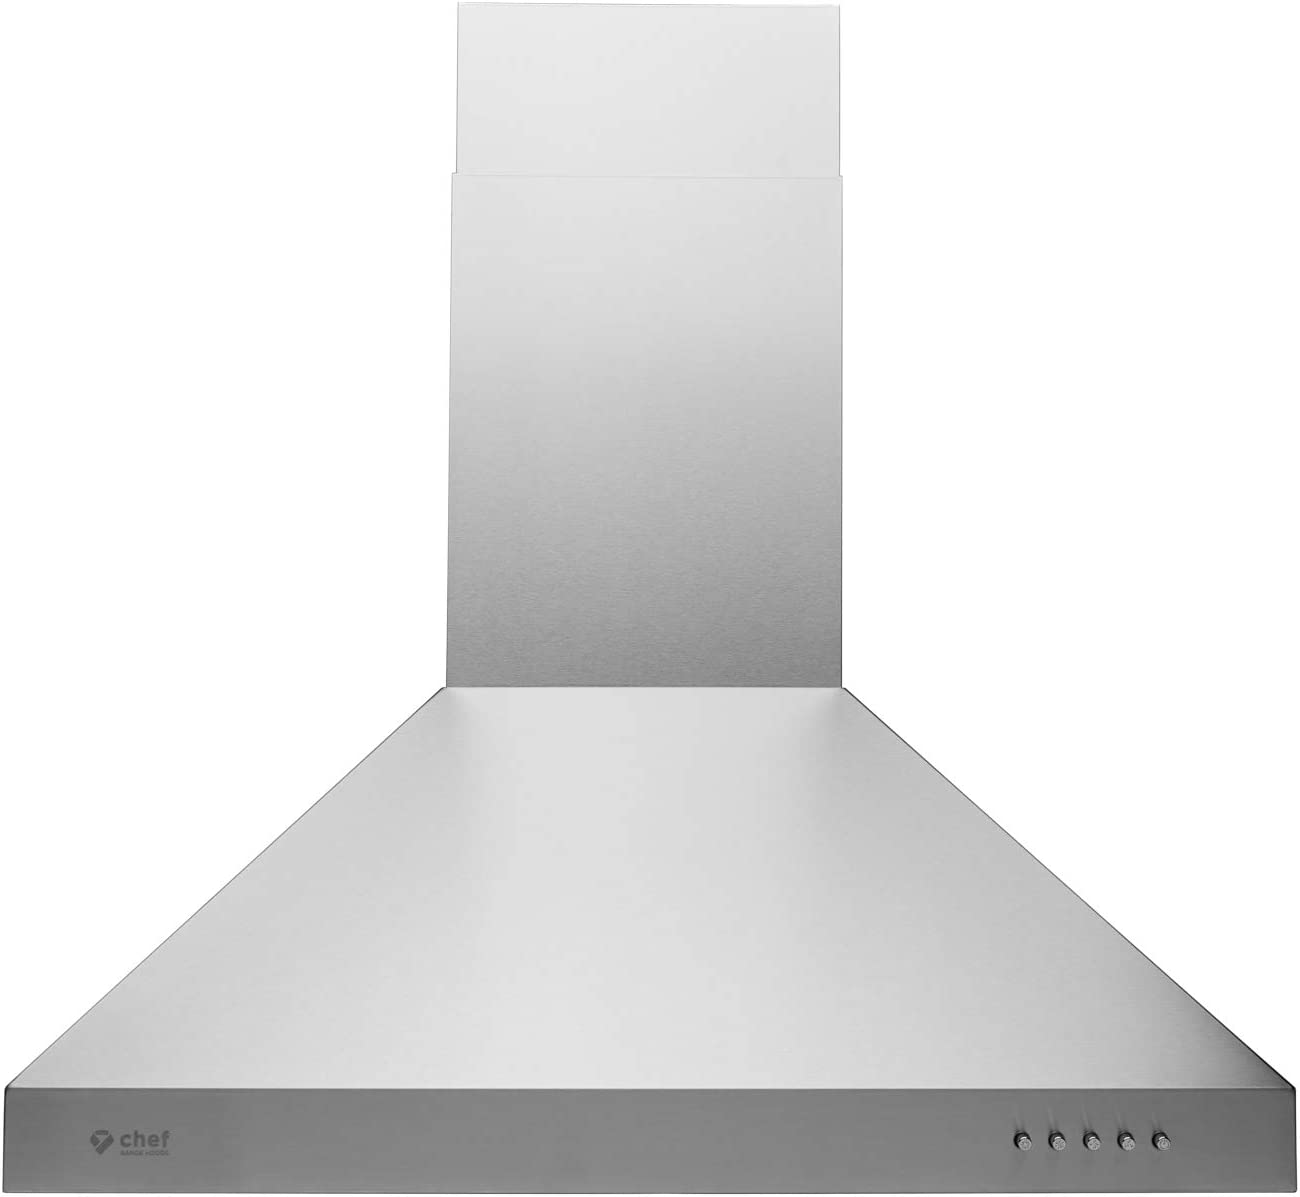 "Hauslane - Chef Series Range Hood 30"" WM-530SS-30P - European Style Series - 3 Speed Stainless Steel Wall-Mount - Strong Suction - Button Control, Steel Baffle Filter, LED Lamps - 6"" Duct or Ductless"